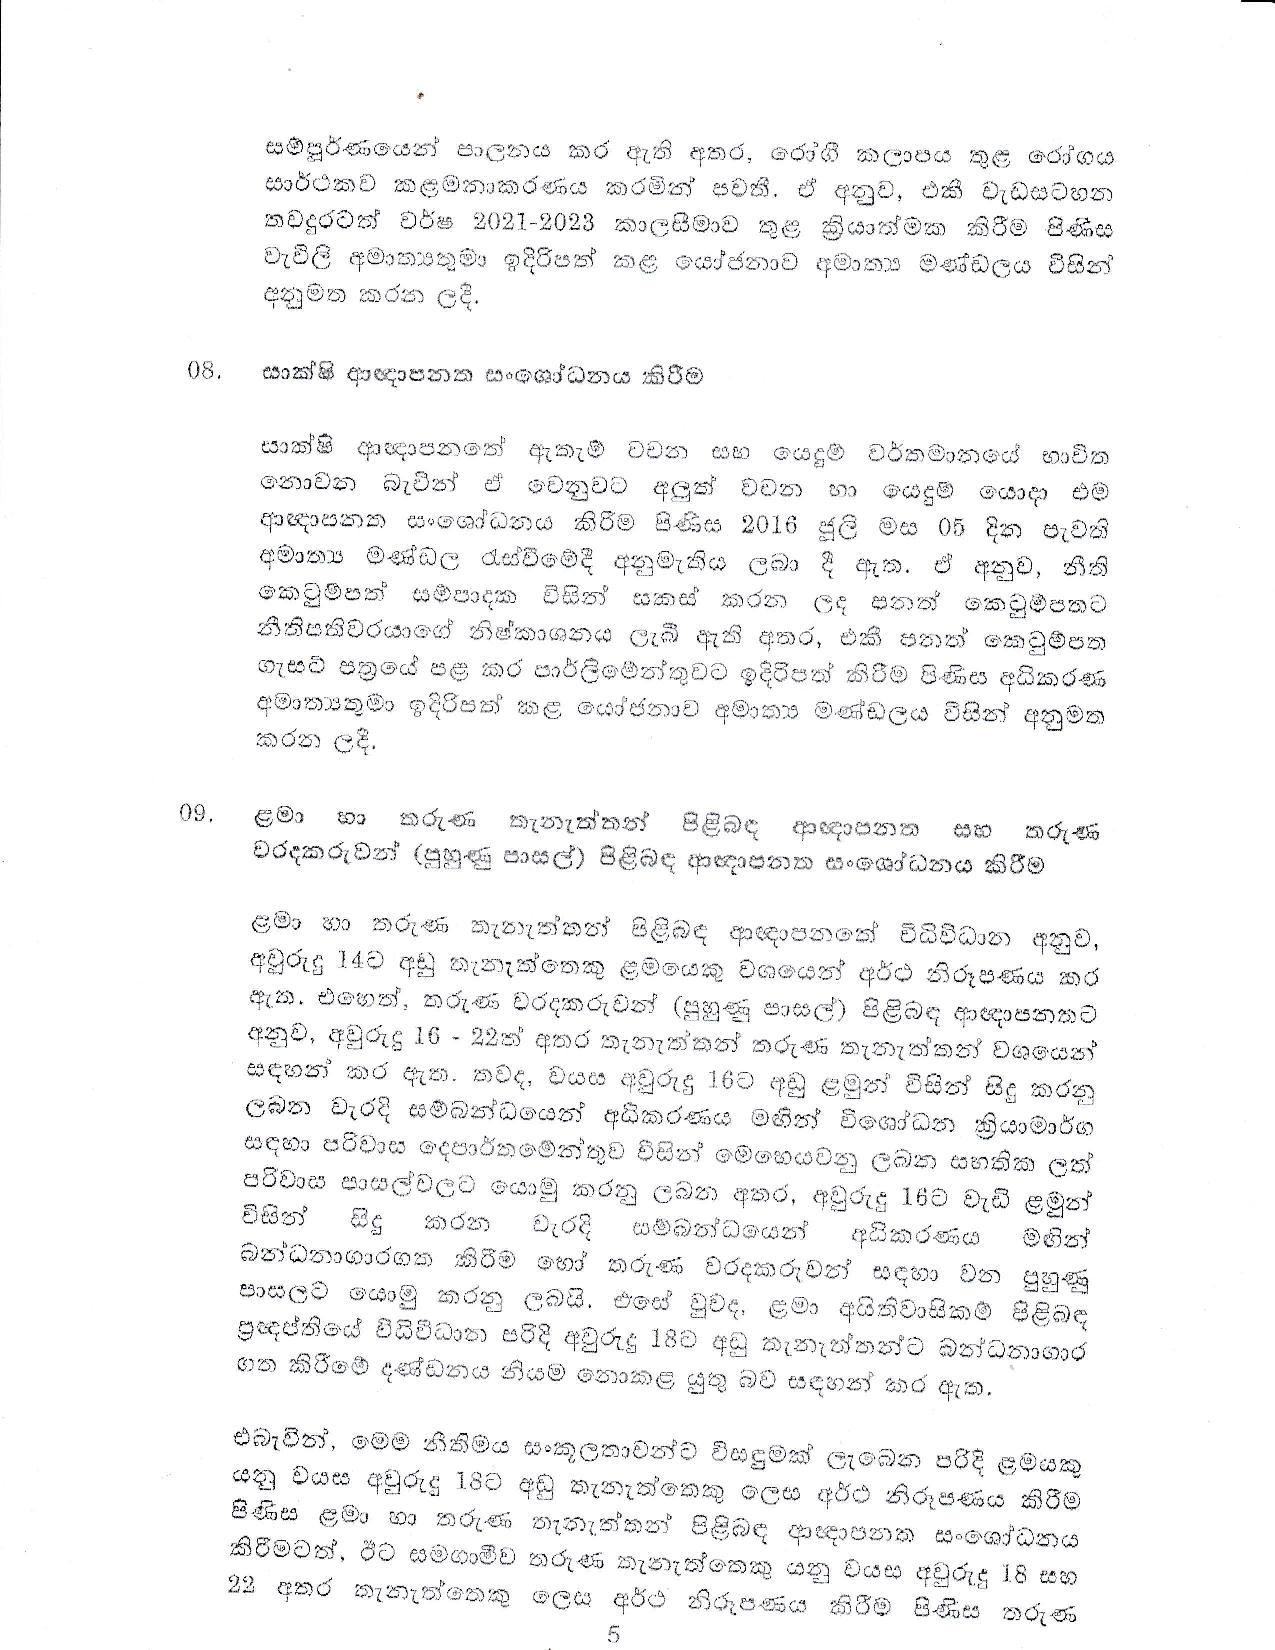 Cabinet Decision on 16.09.2020 page 005